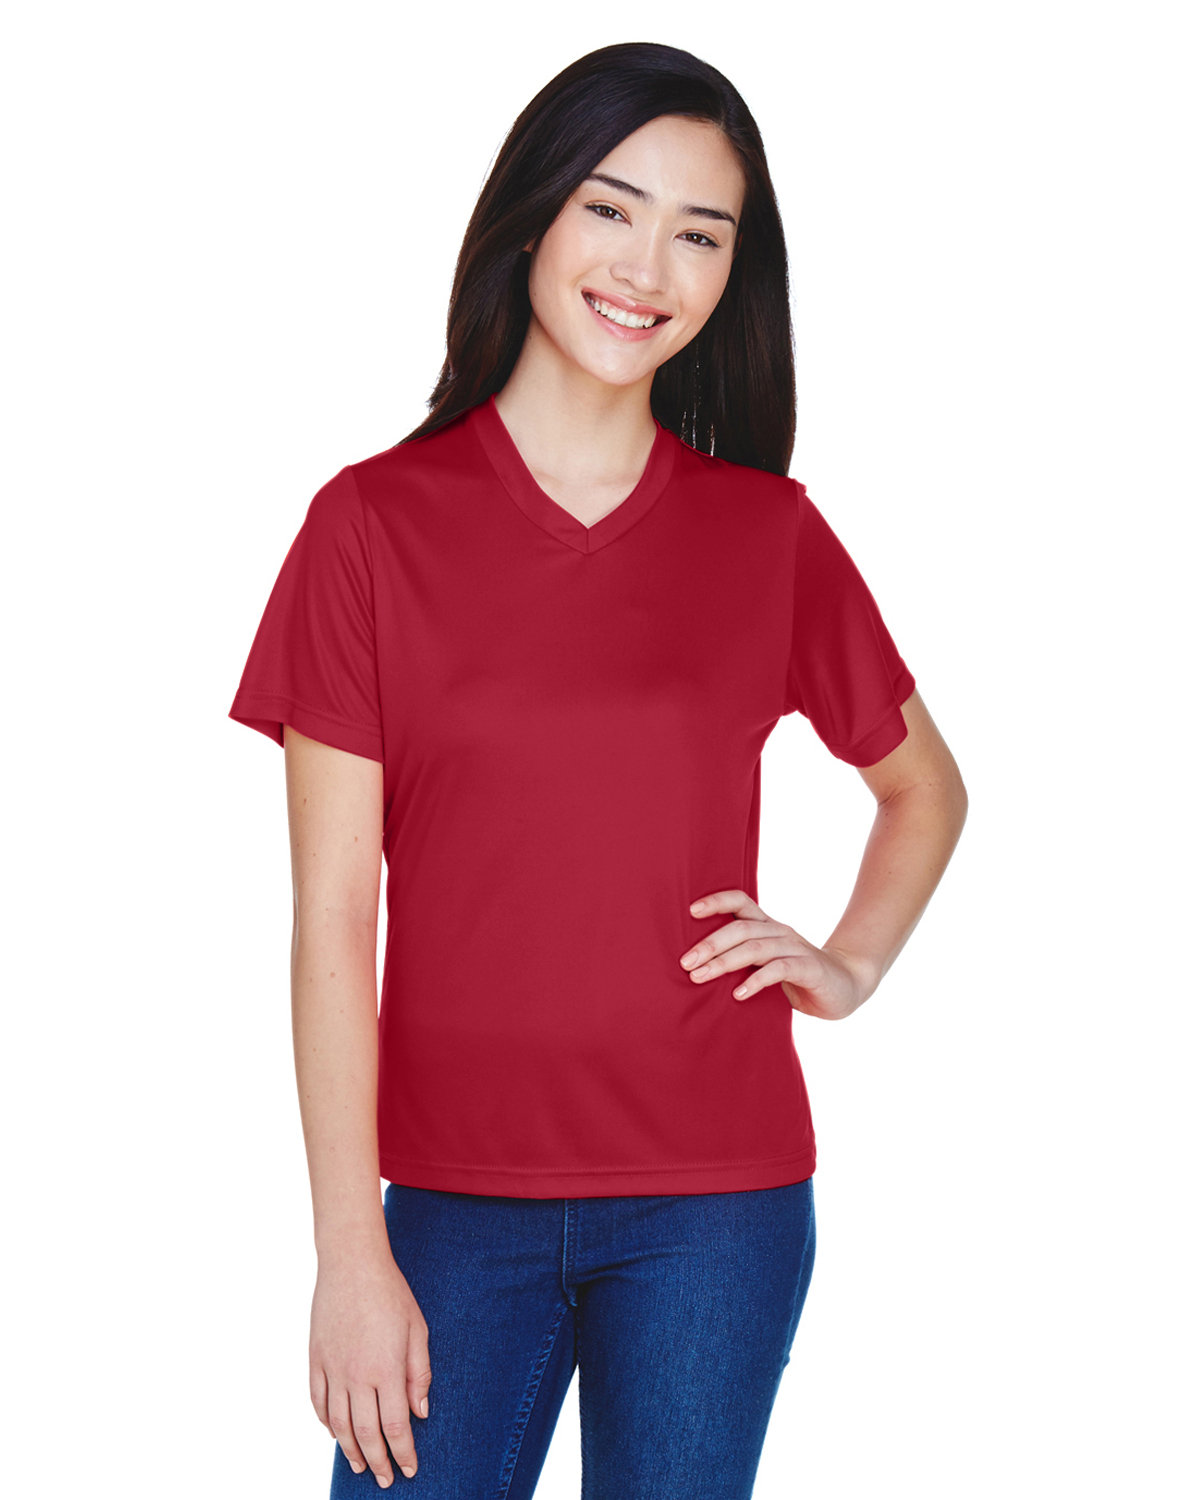 Team 365 Ladies' Zone Performance T-Shirt SPORT SCRLET RED